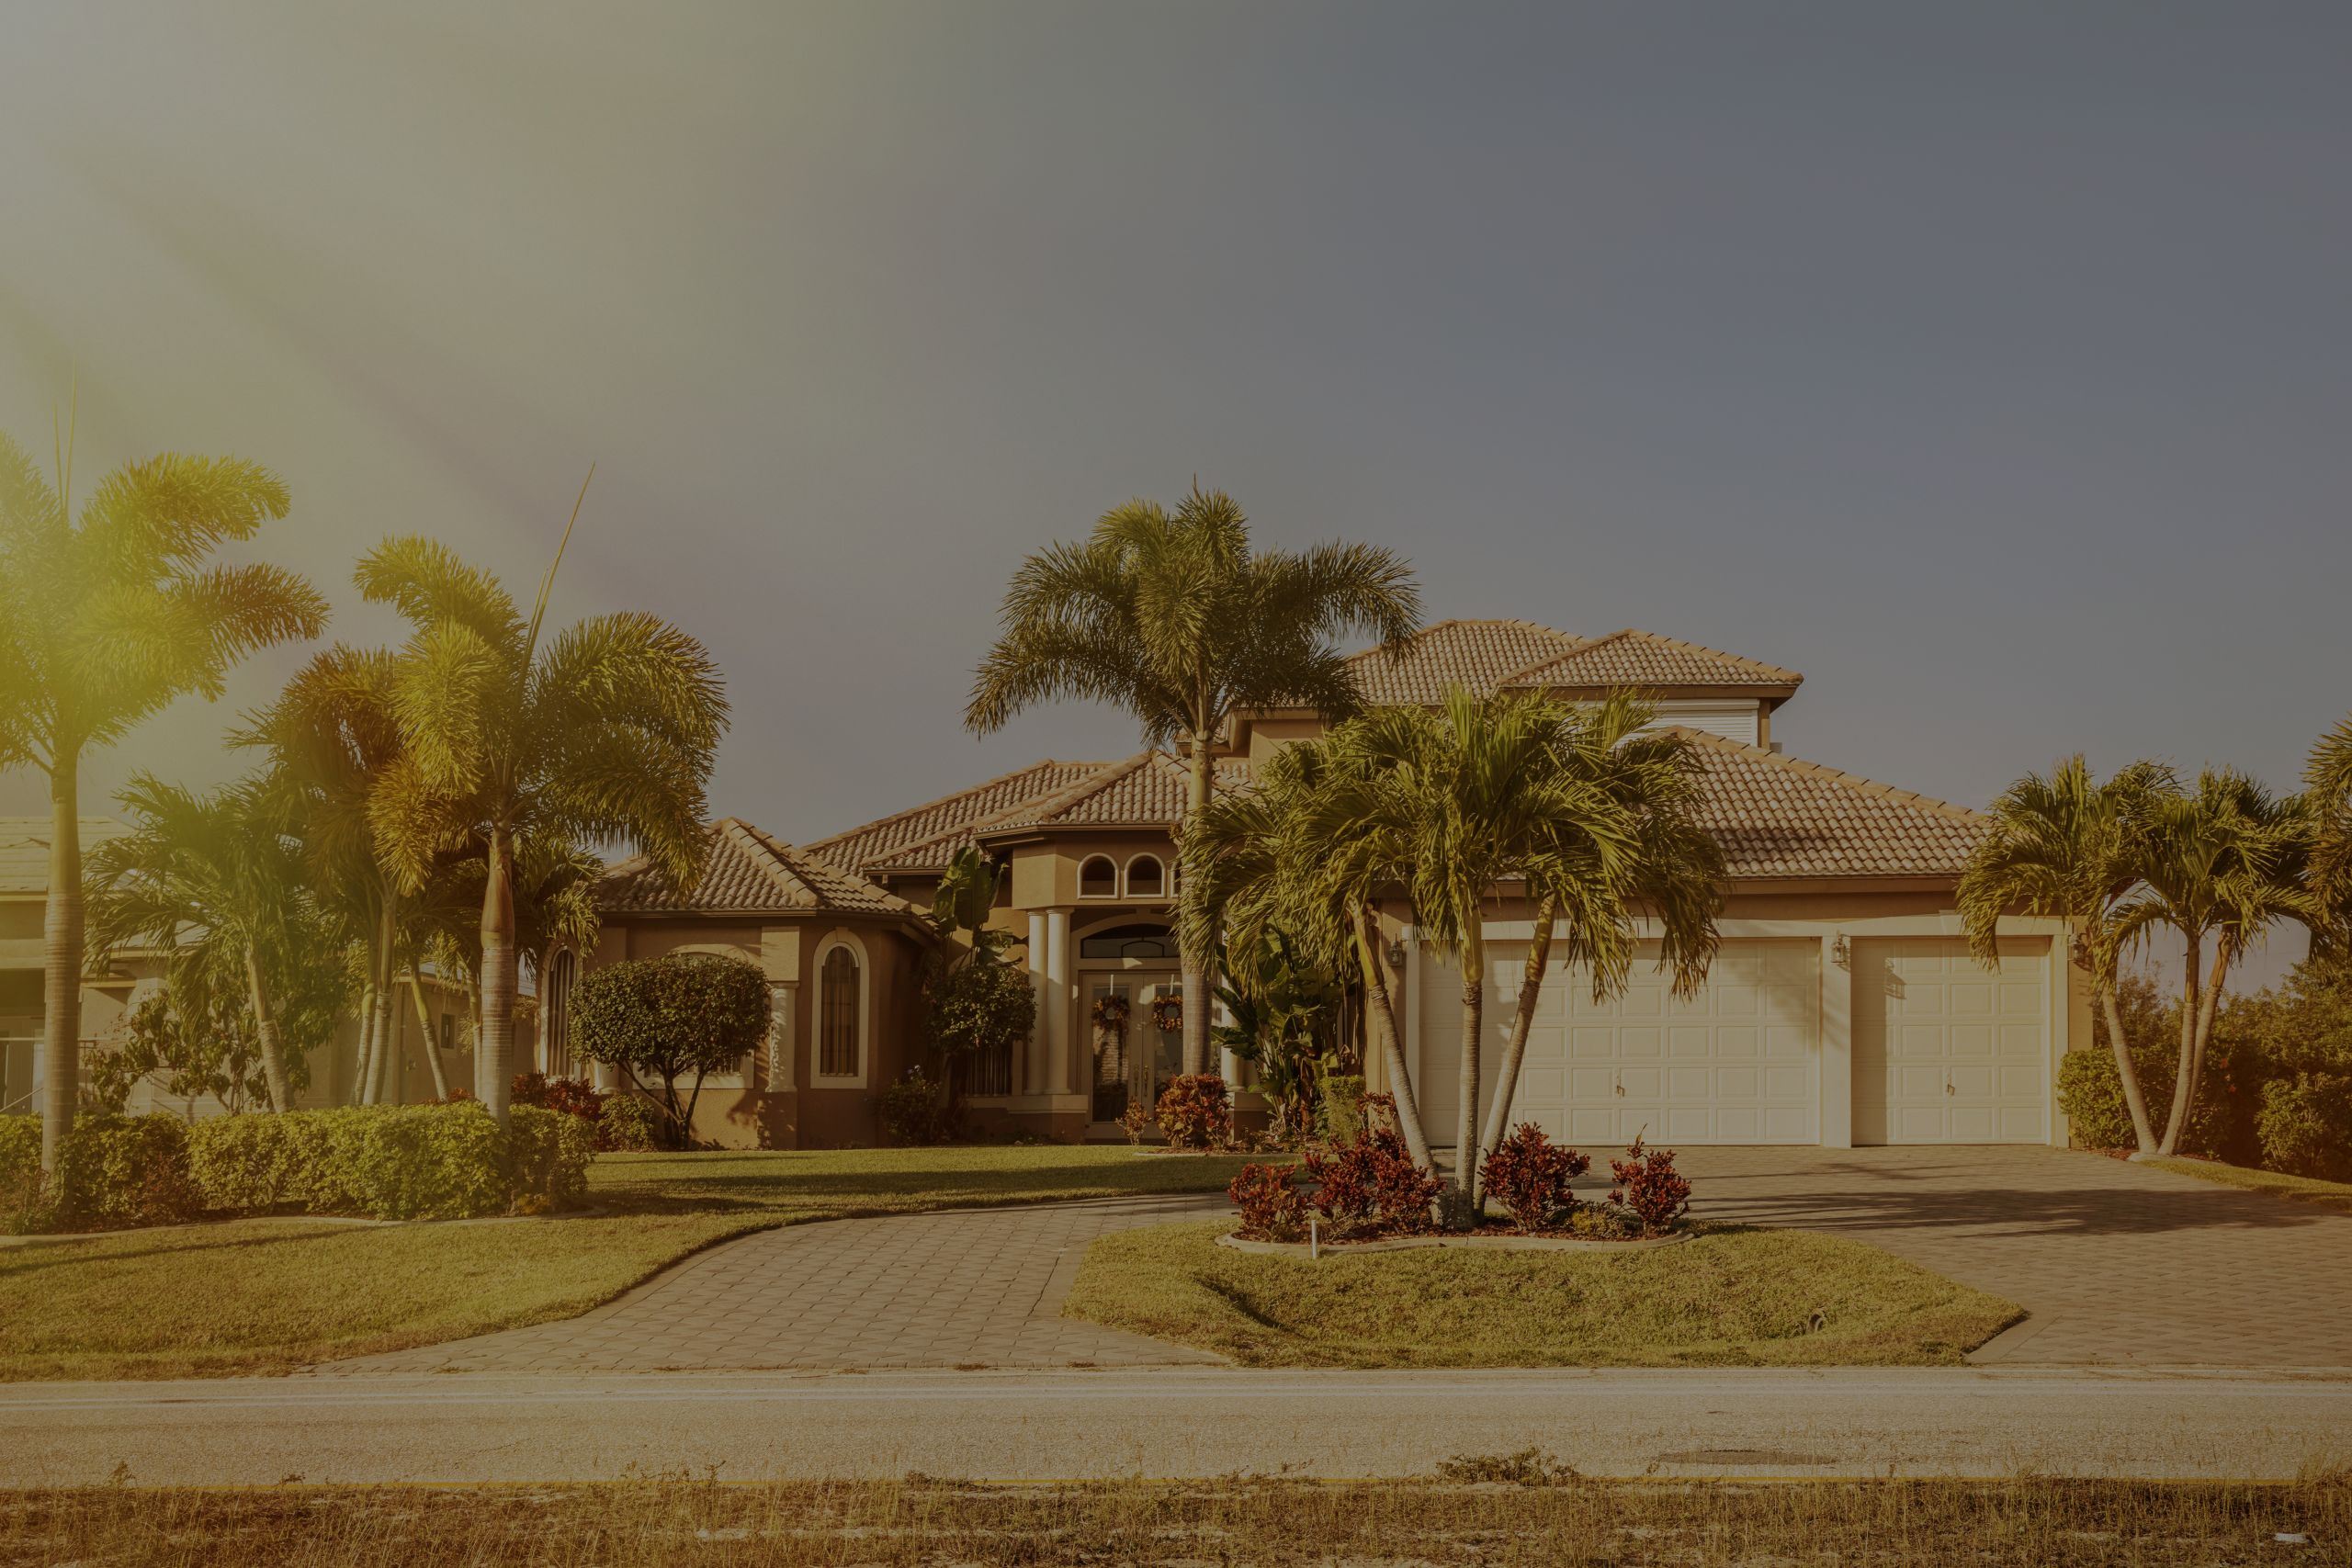 Boca Raton Real Estate Guide to Renting, Buying and Investing in Boca Raton Homes